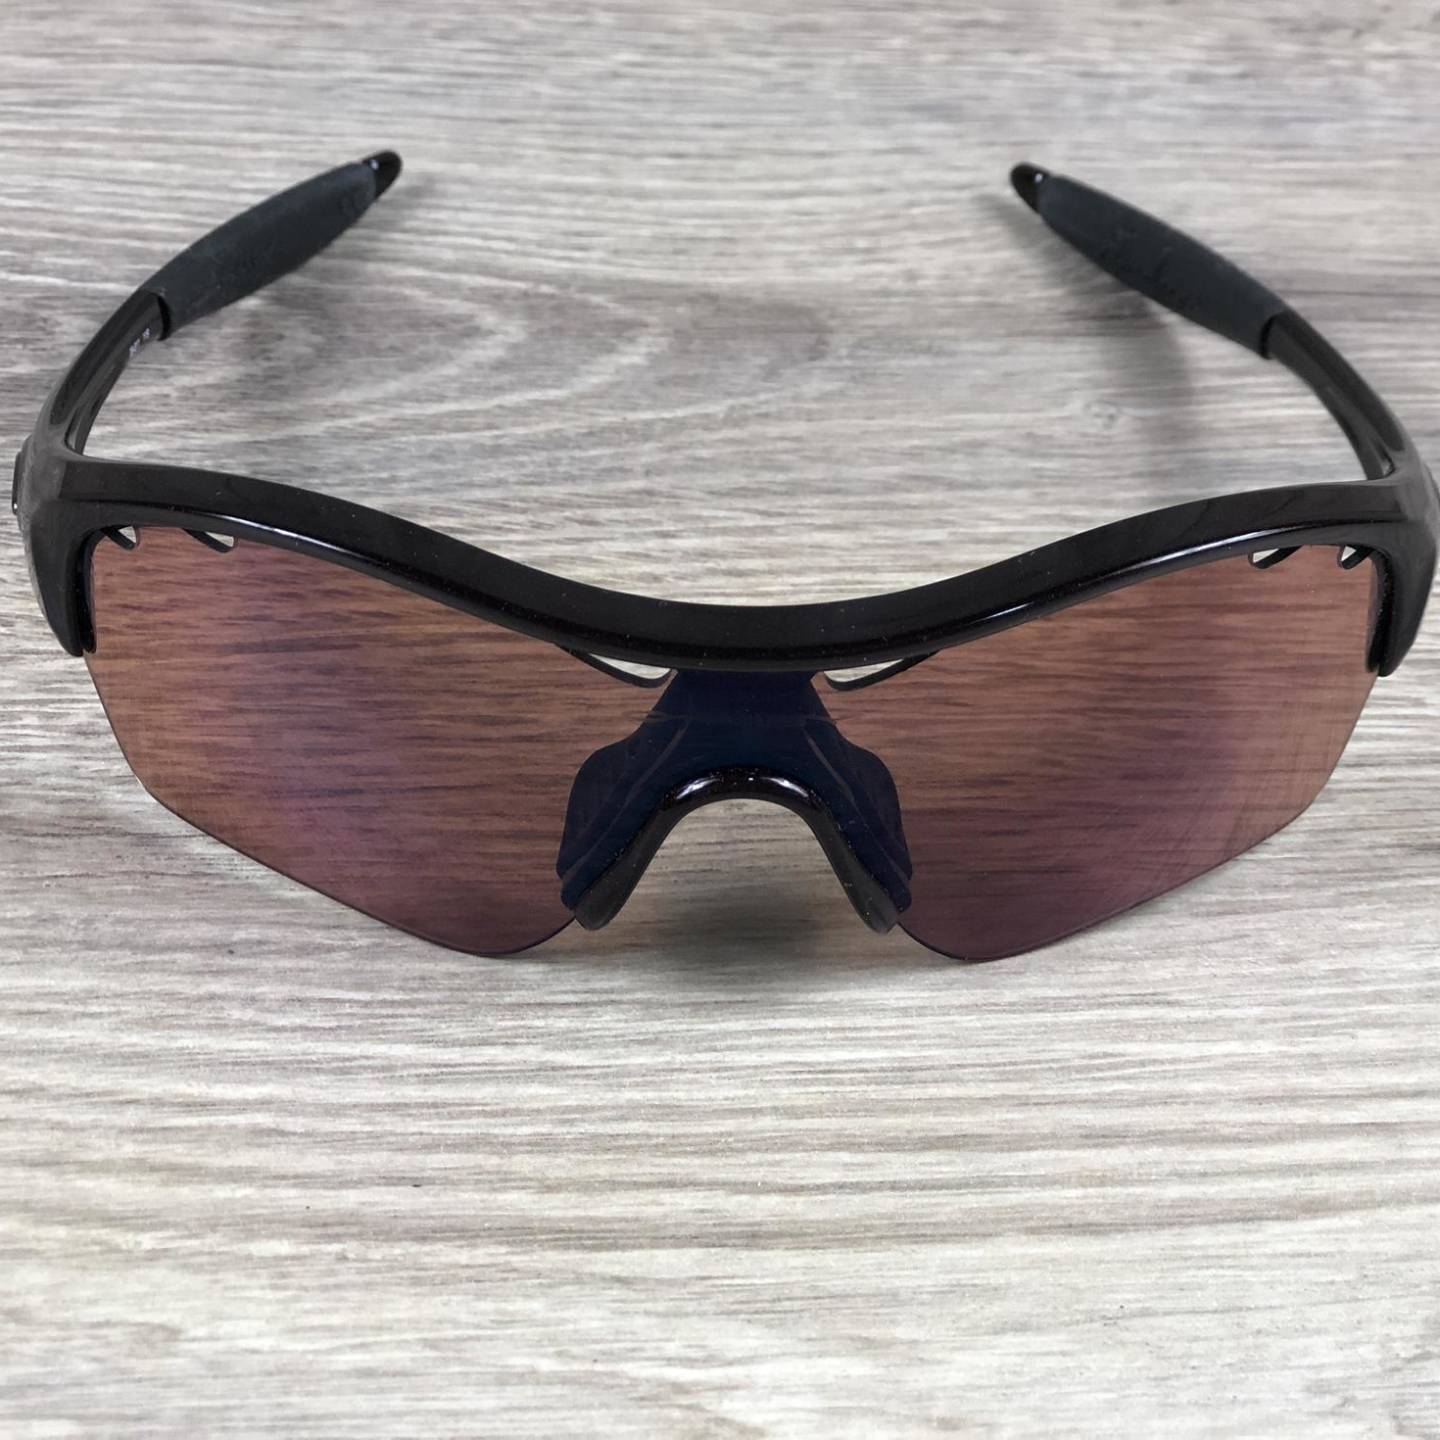 Enduring Women's Cycling Sunglasses 00002701 (4)